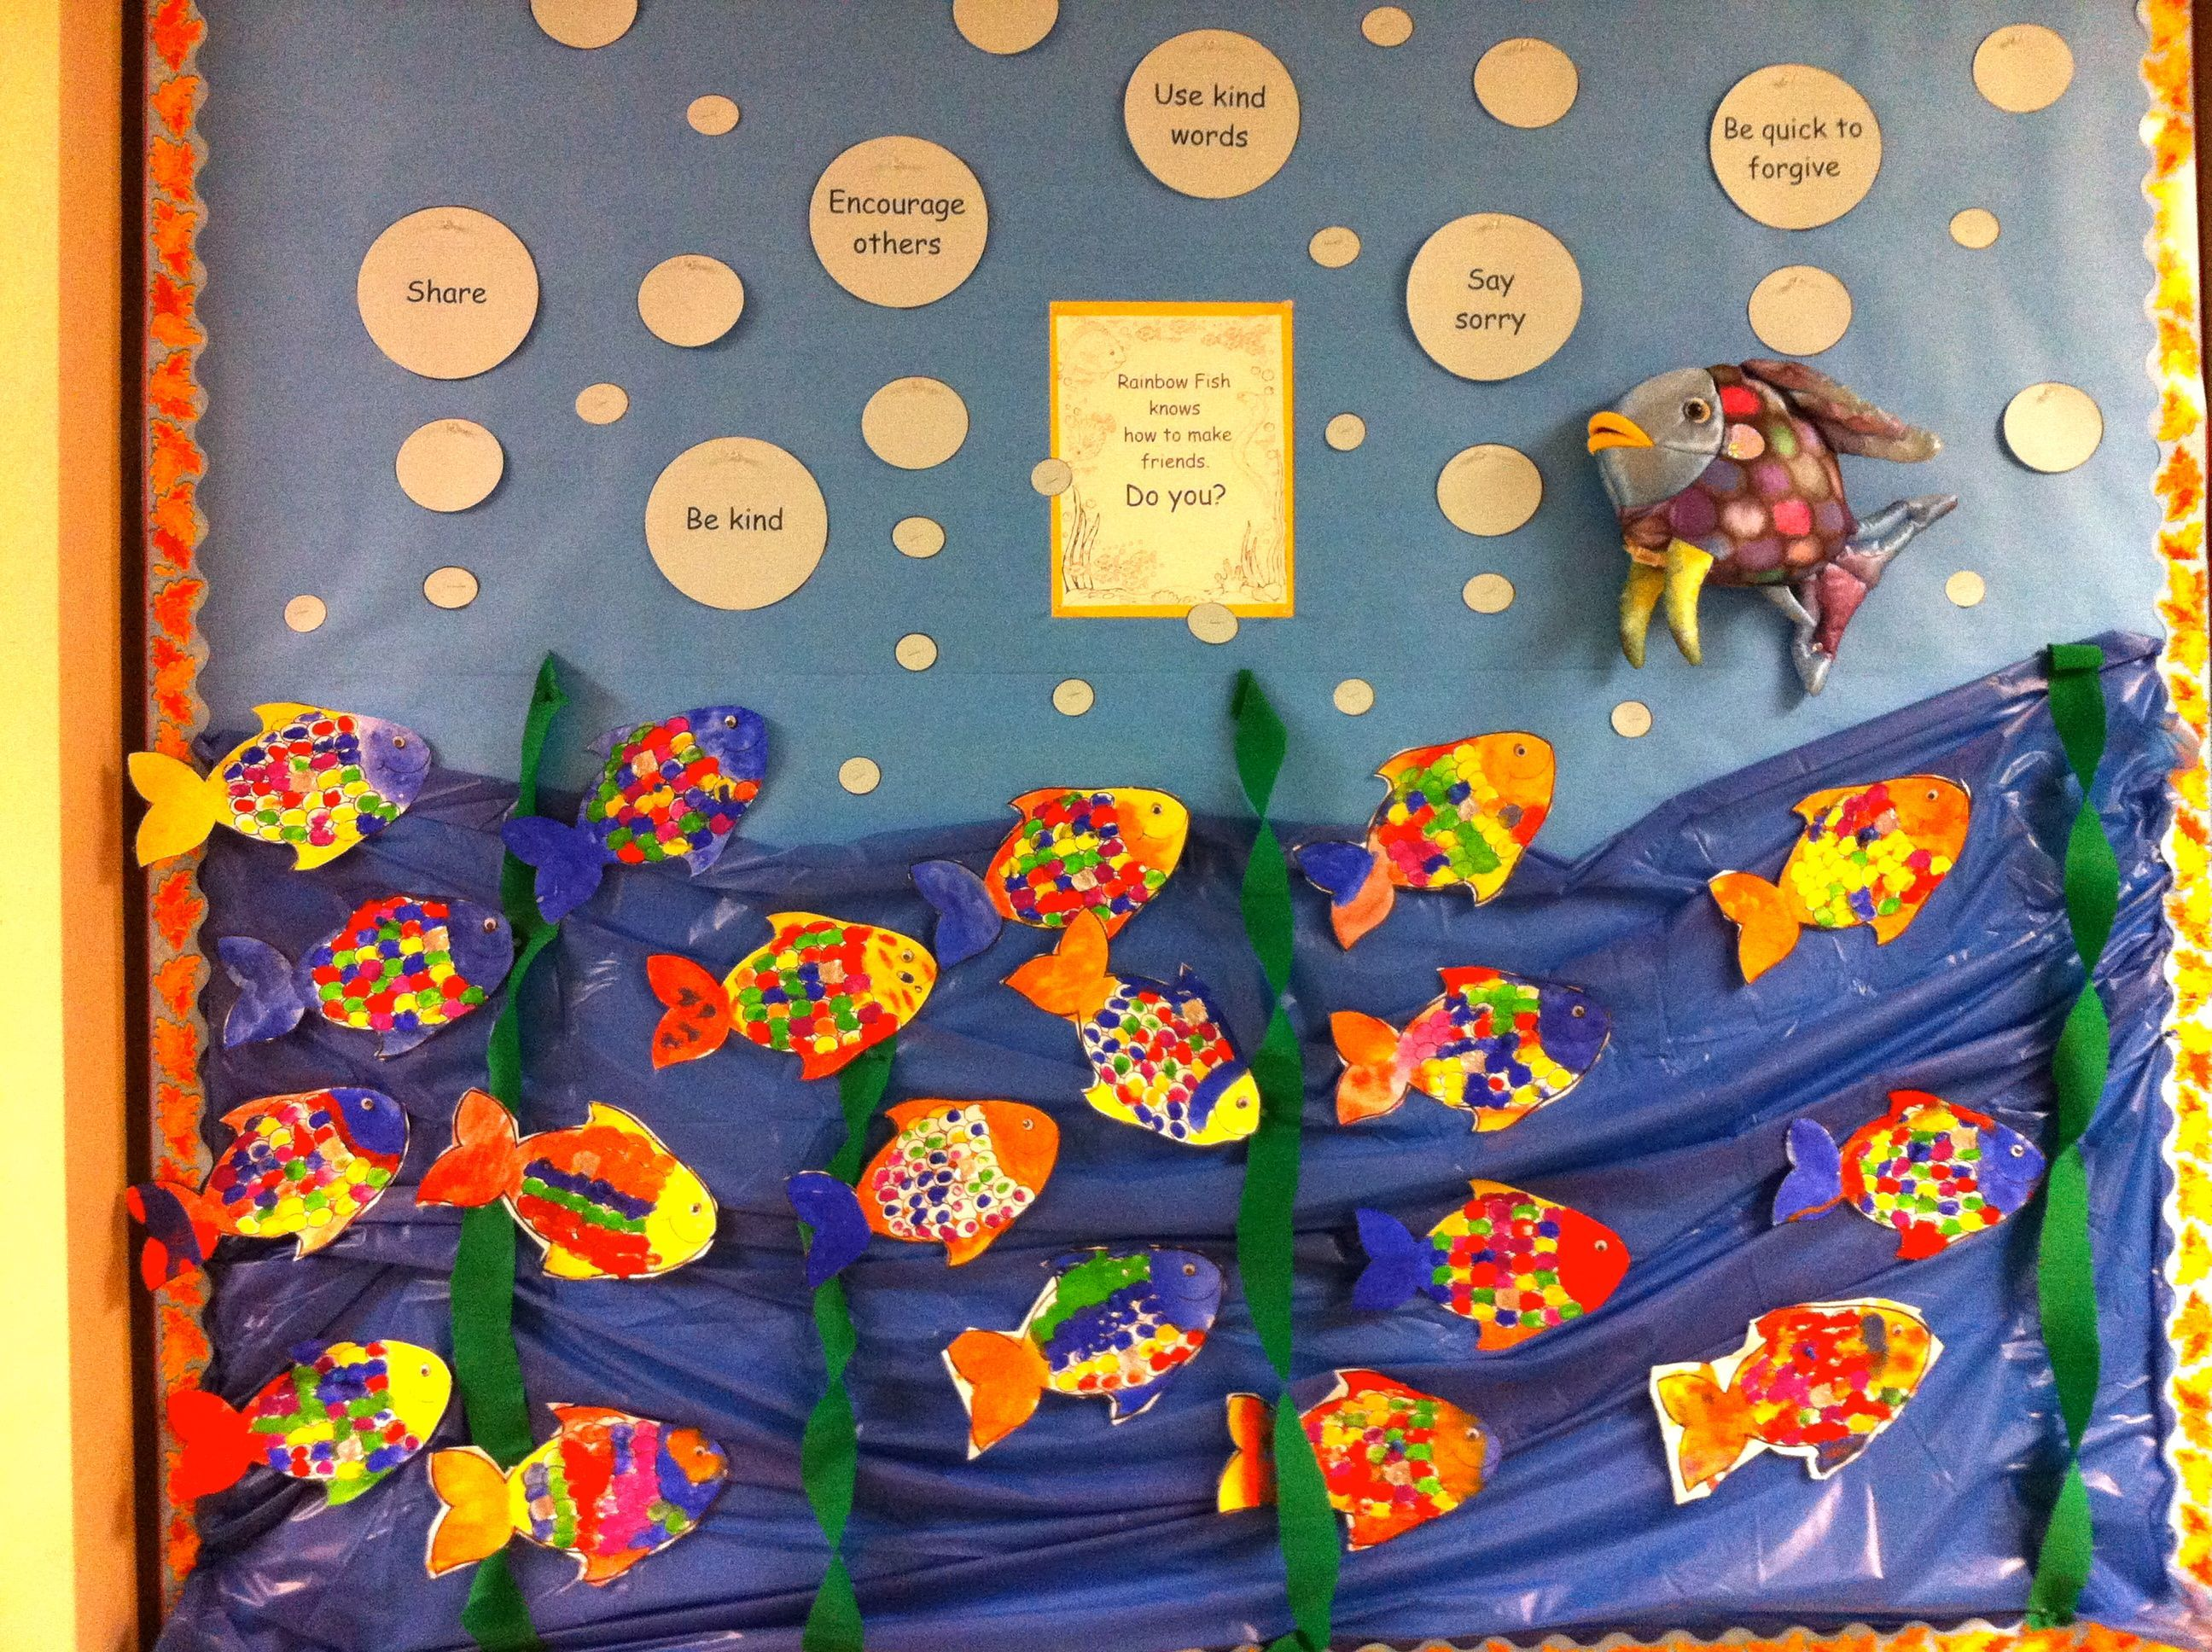 Marcus Pfister S Rainbow Fish Making Friends Display For